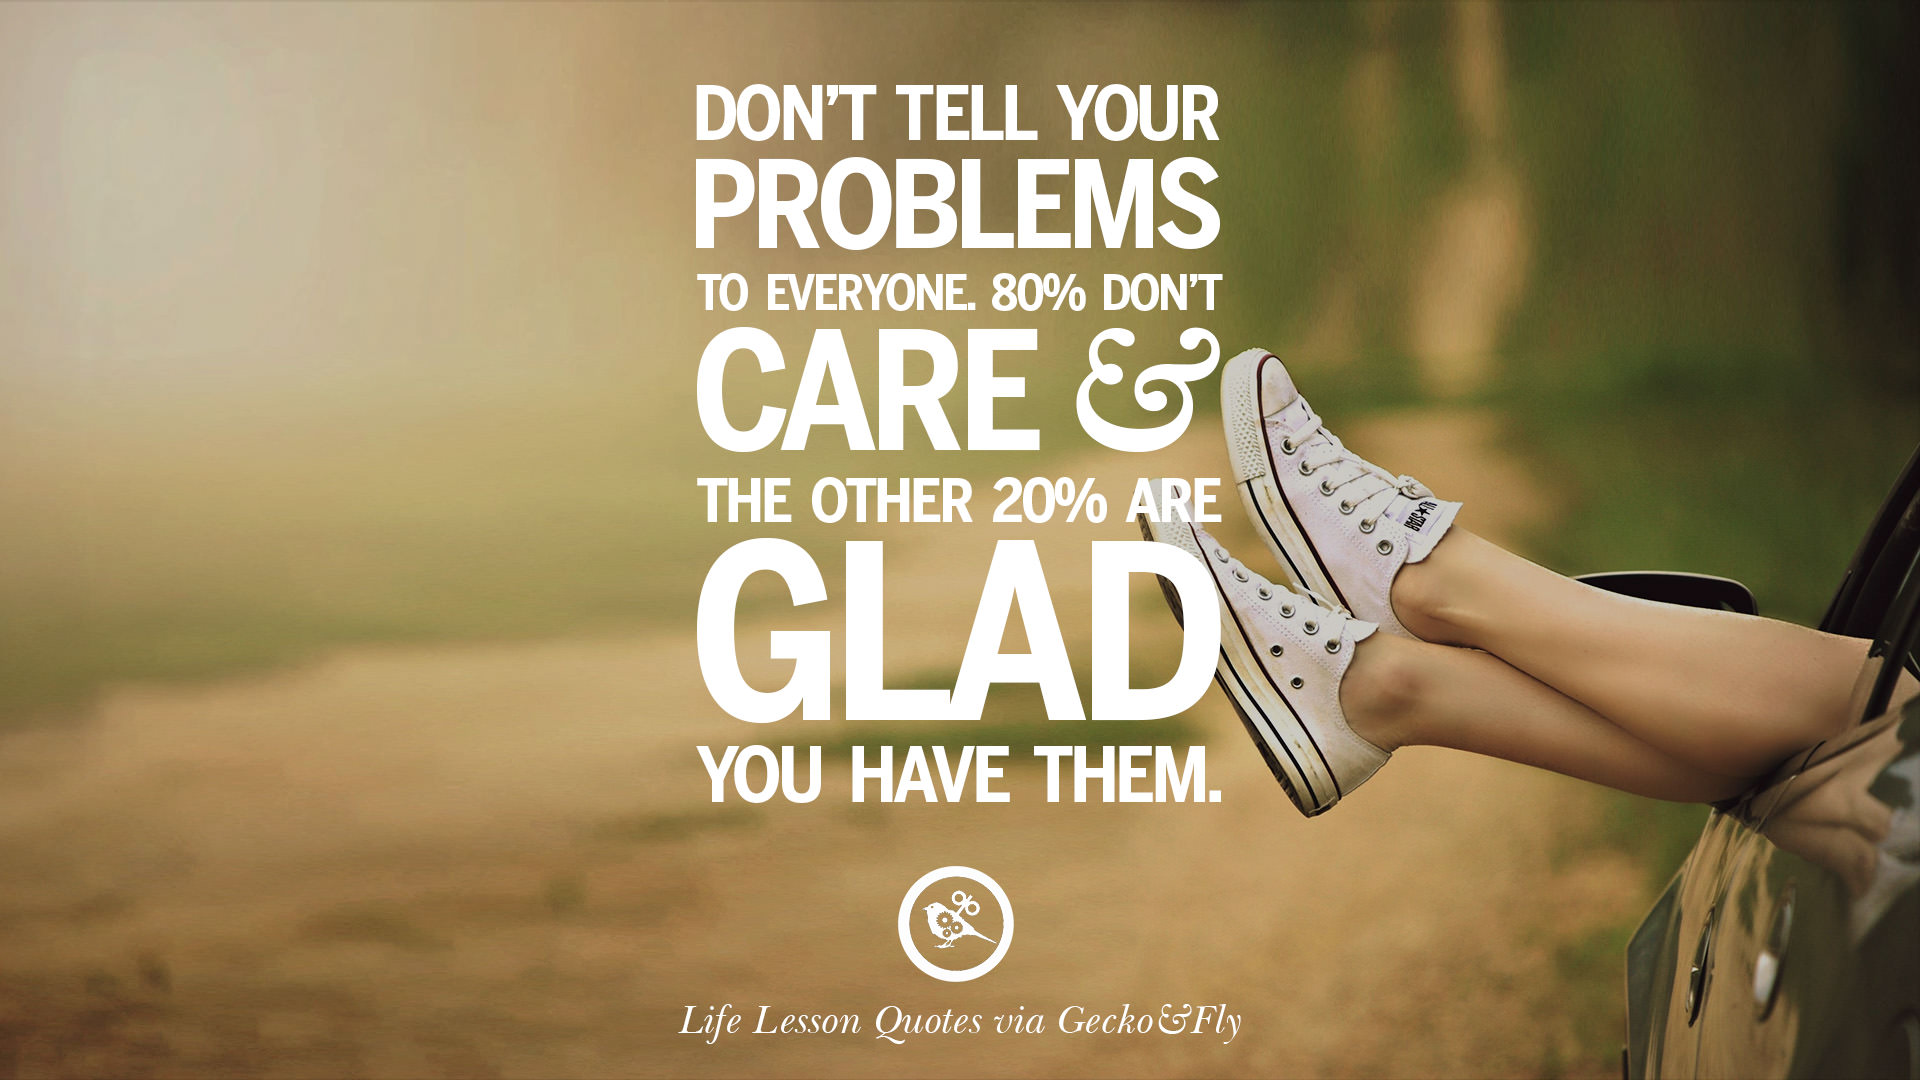 Donu0027t Tell Your Problems To Everyone. 80% Donu0027t Care And The Other 20% Are  Glad You Have Them.